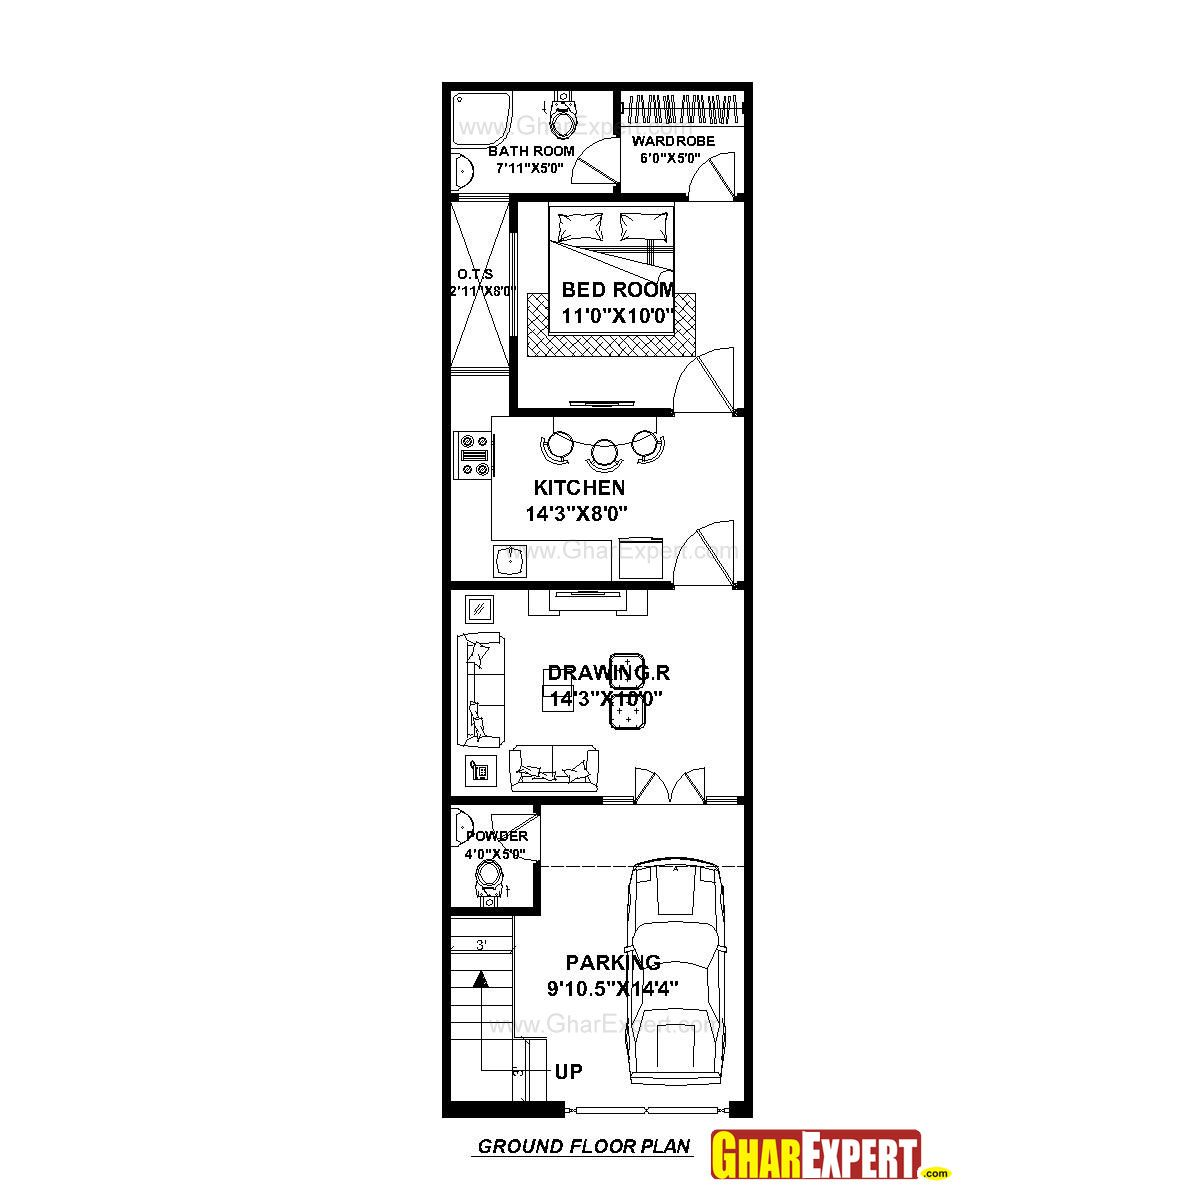 House plan for 15 feet by 50 feet plot plot size 83 square yards house plan for 15 feet by 50 feet plot plot size 83 square yards gharexpert malvernweather Image collections